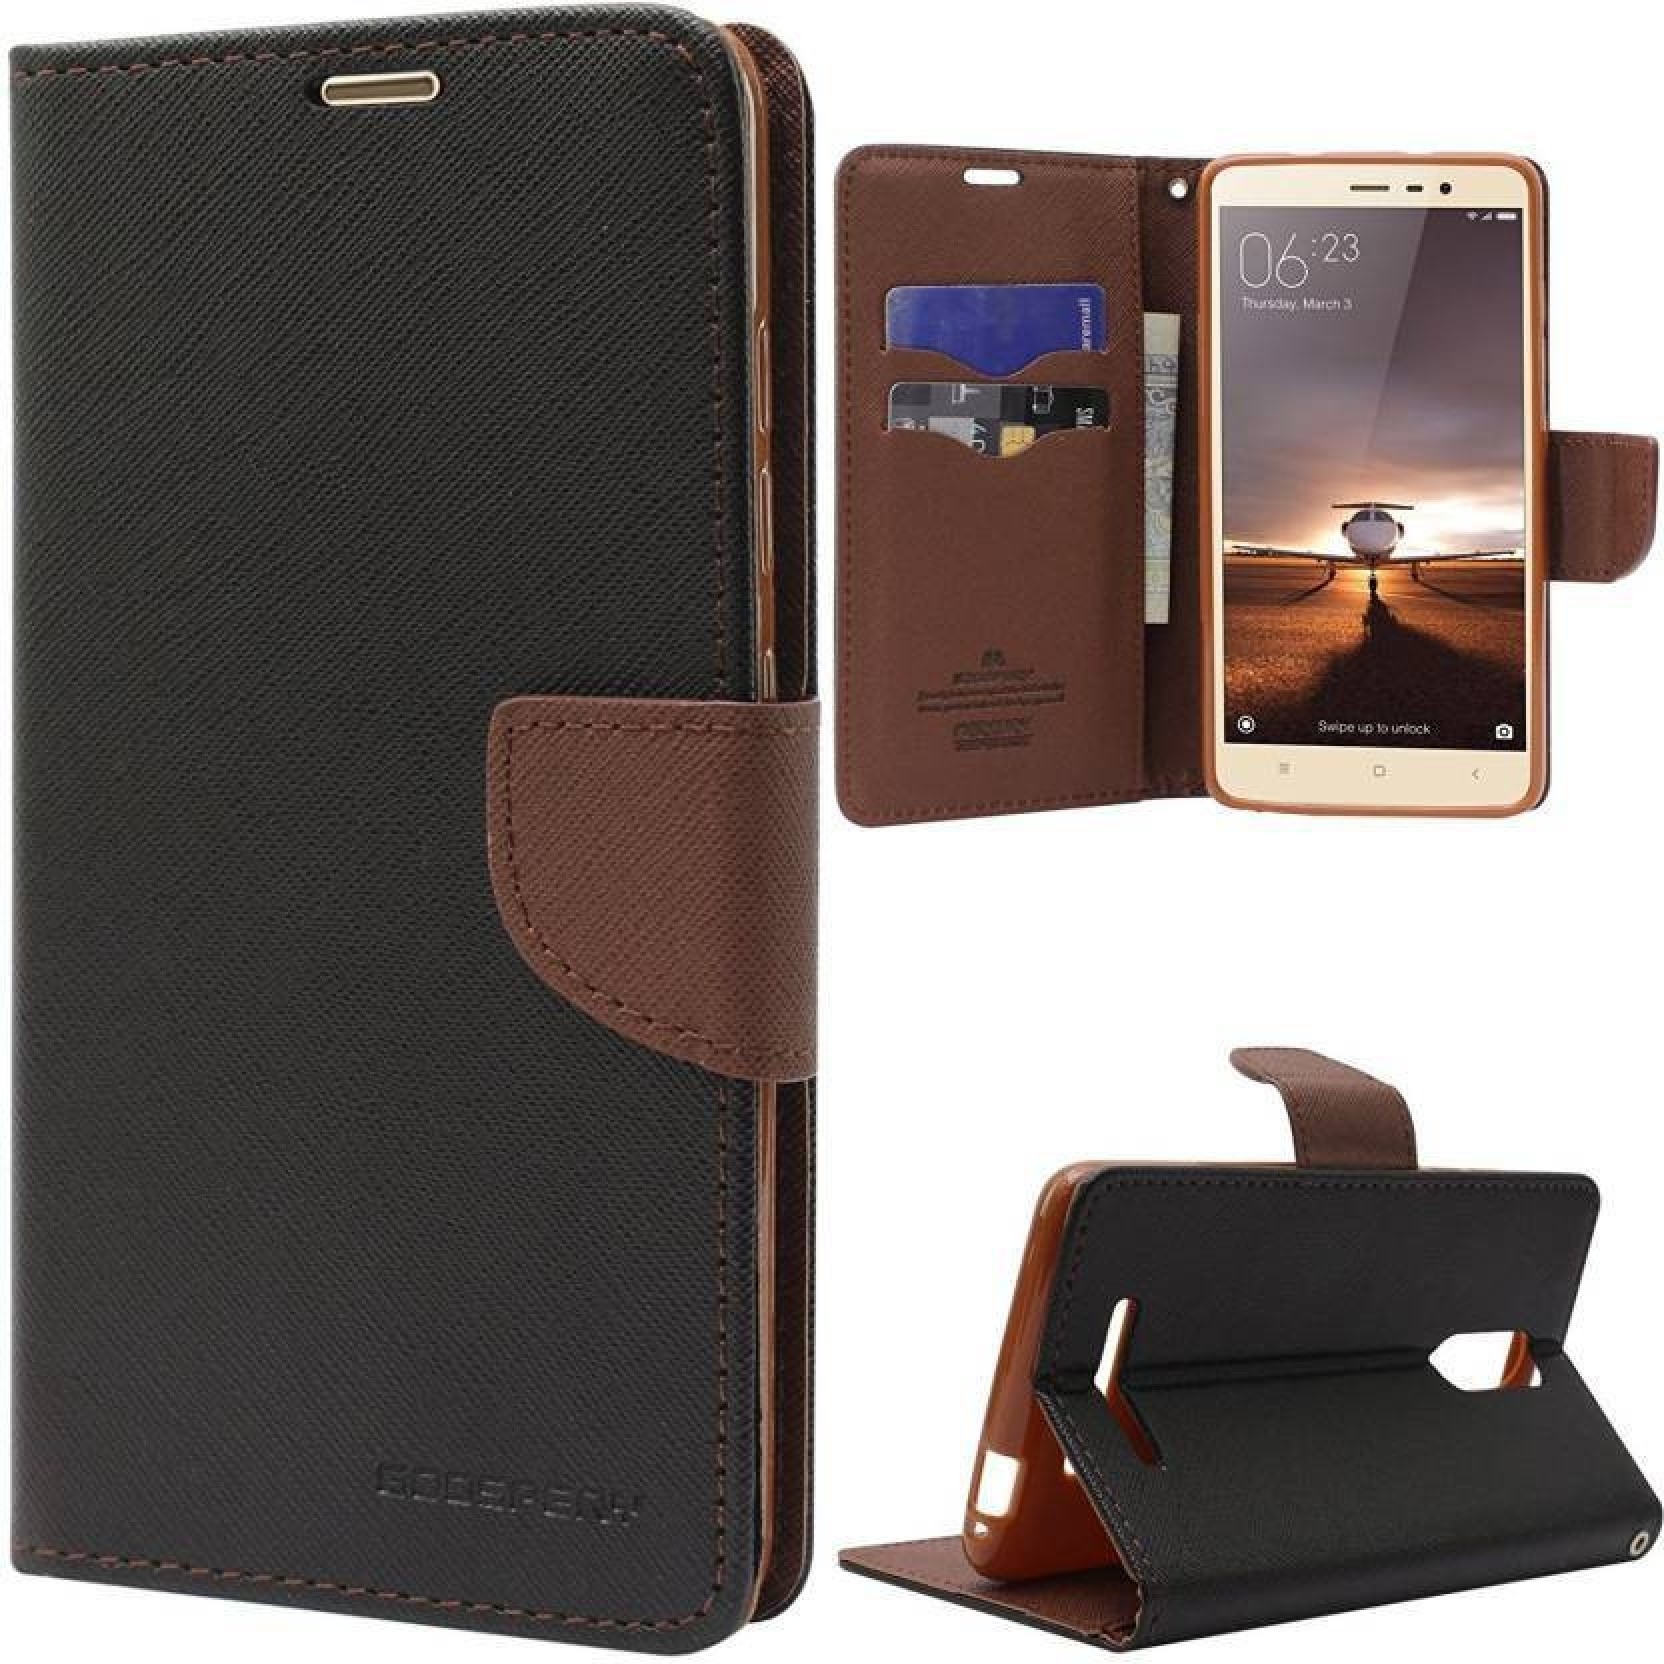 Ramola Traders Flip Cover For Mi Redmi 6a Mercury Goospery Fancy Iphone 6 6s Diary Case Brown Black Wallet Add To Cart